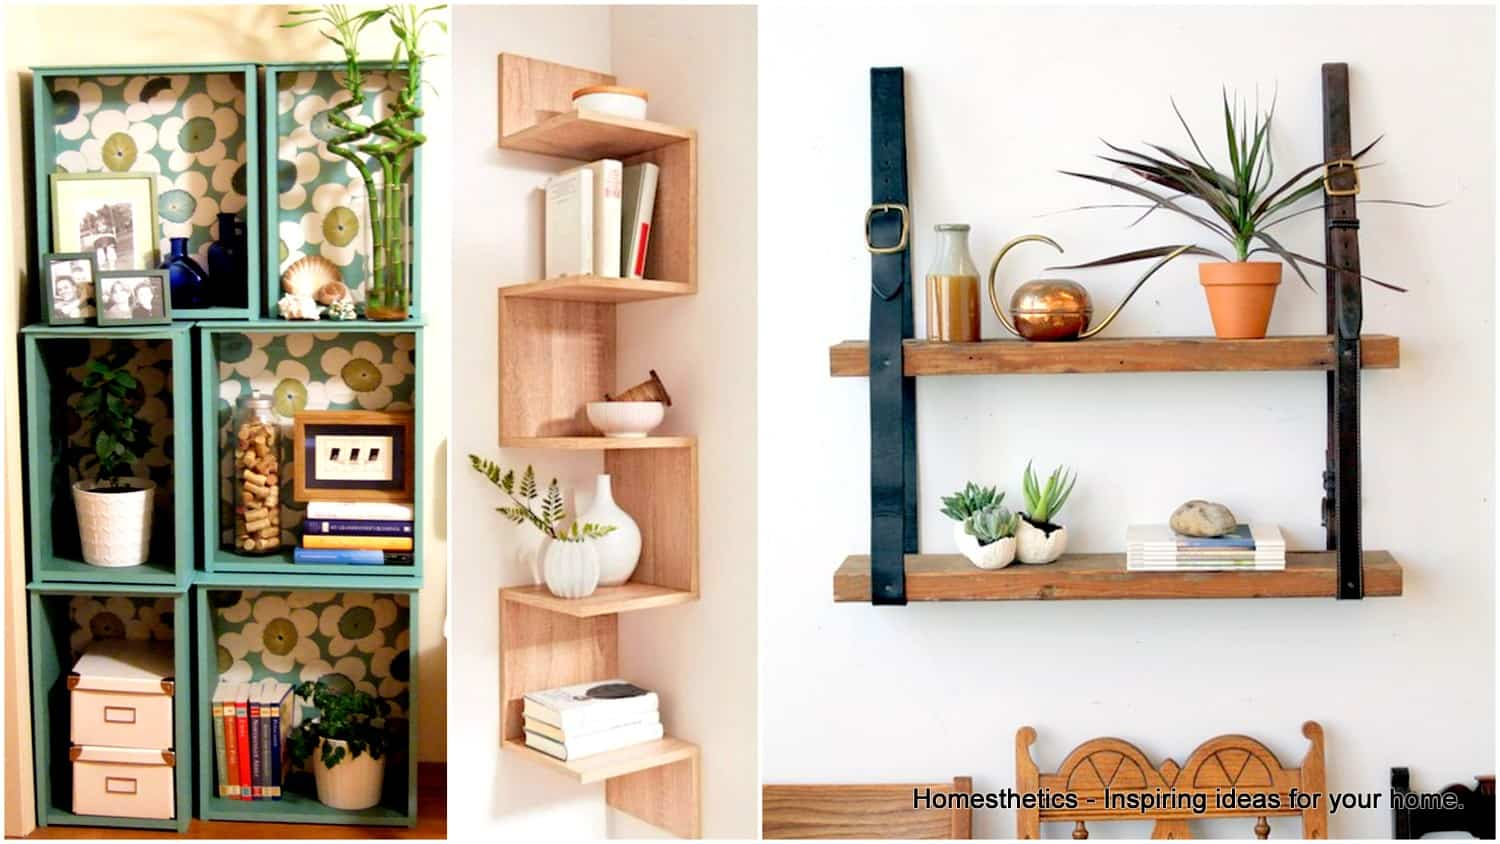 57 diy free bookshelf plans |learn how to build a bookshelf or bookcase